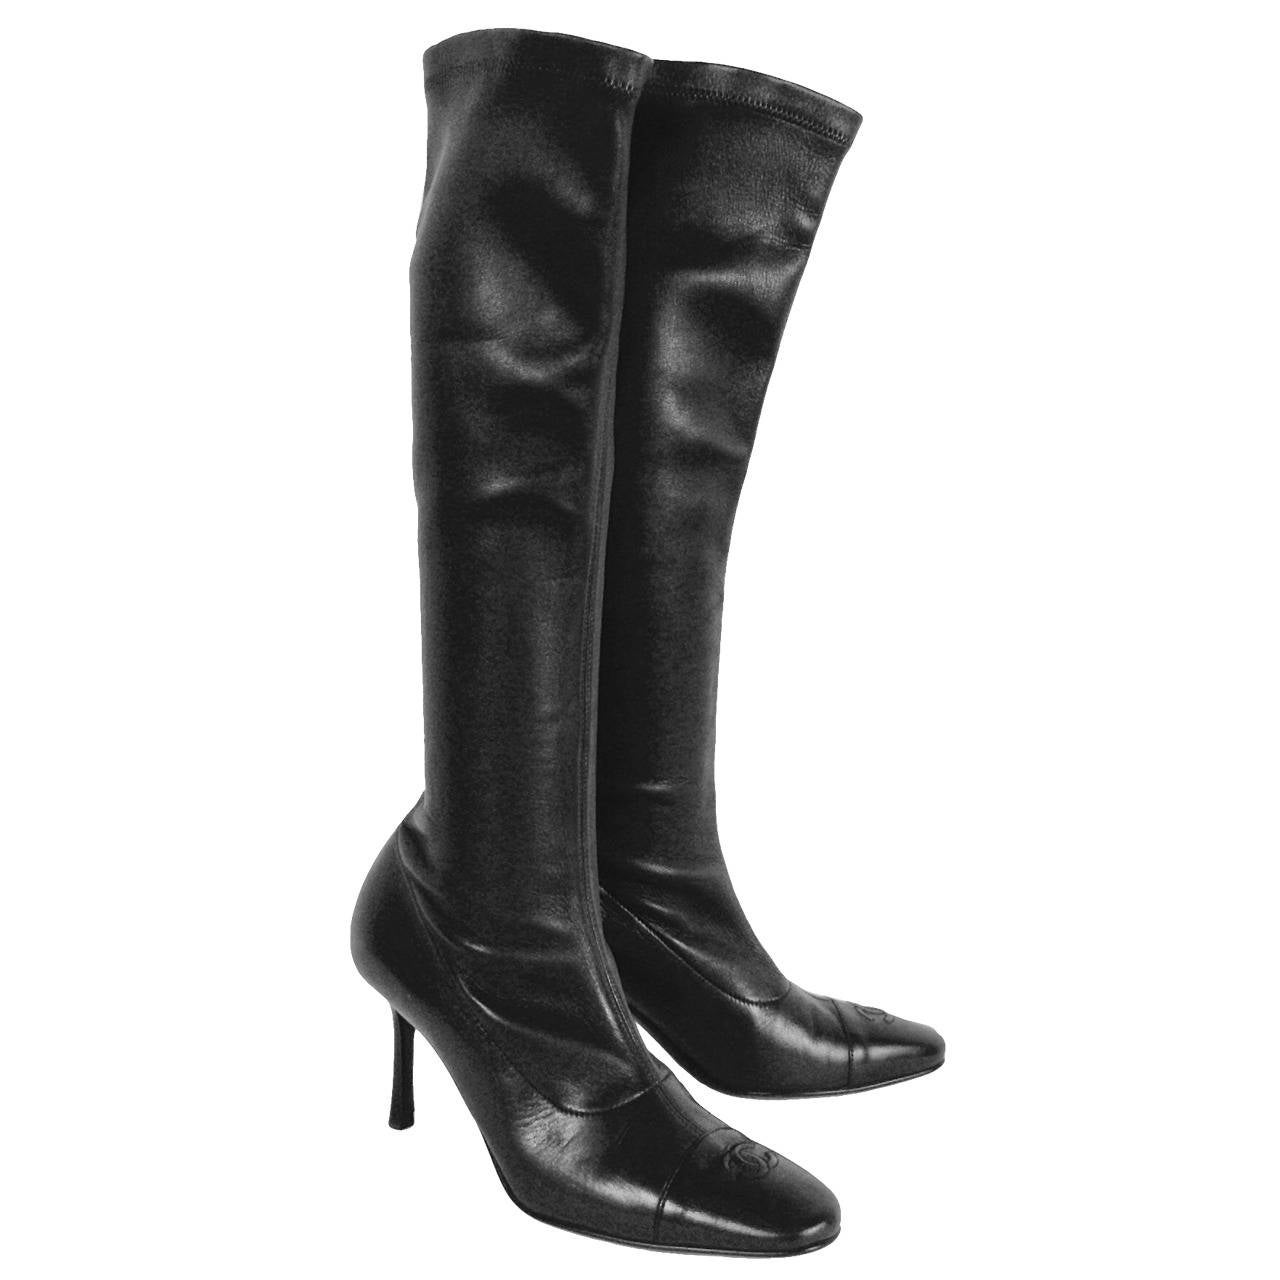 7c9bcb7bb520 Chanel Black Stretch Leather High Heel Tall Boots at 1stdibs